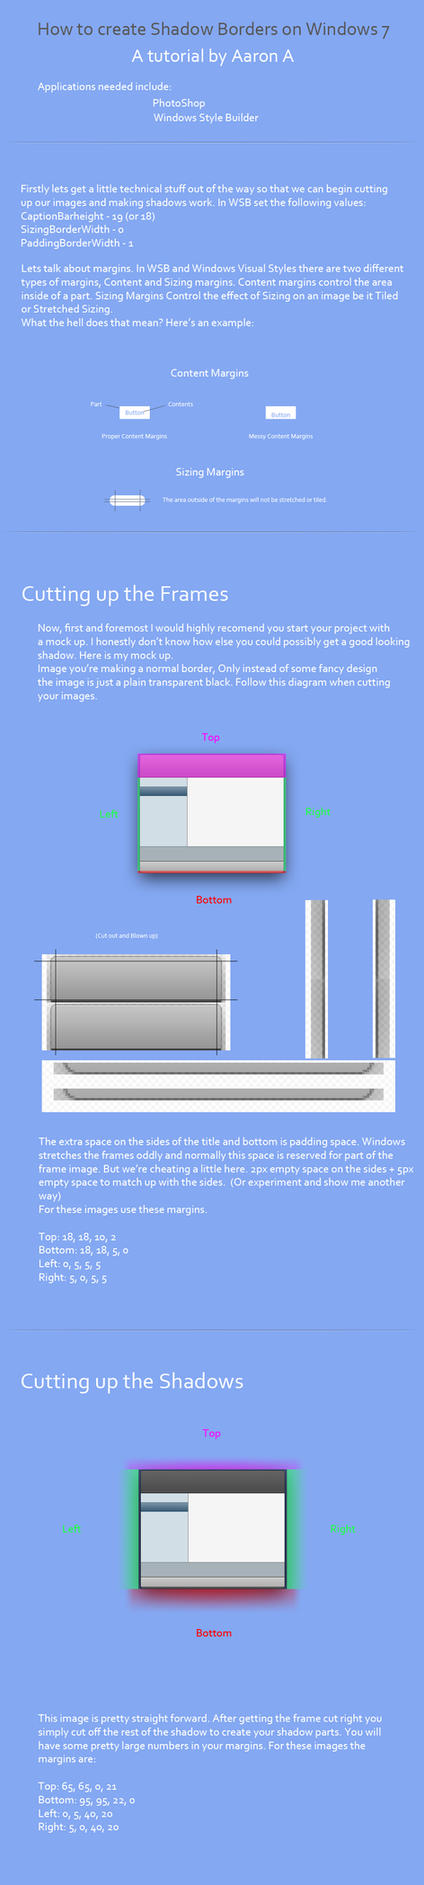 Win7 shadow border tutorial by aaron a arts on deviantart win7 shadow border tutorial by aaron a arts baditri Images